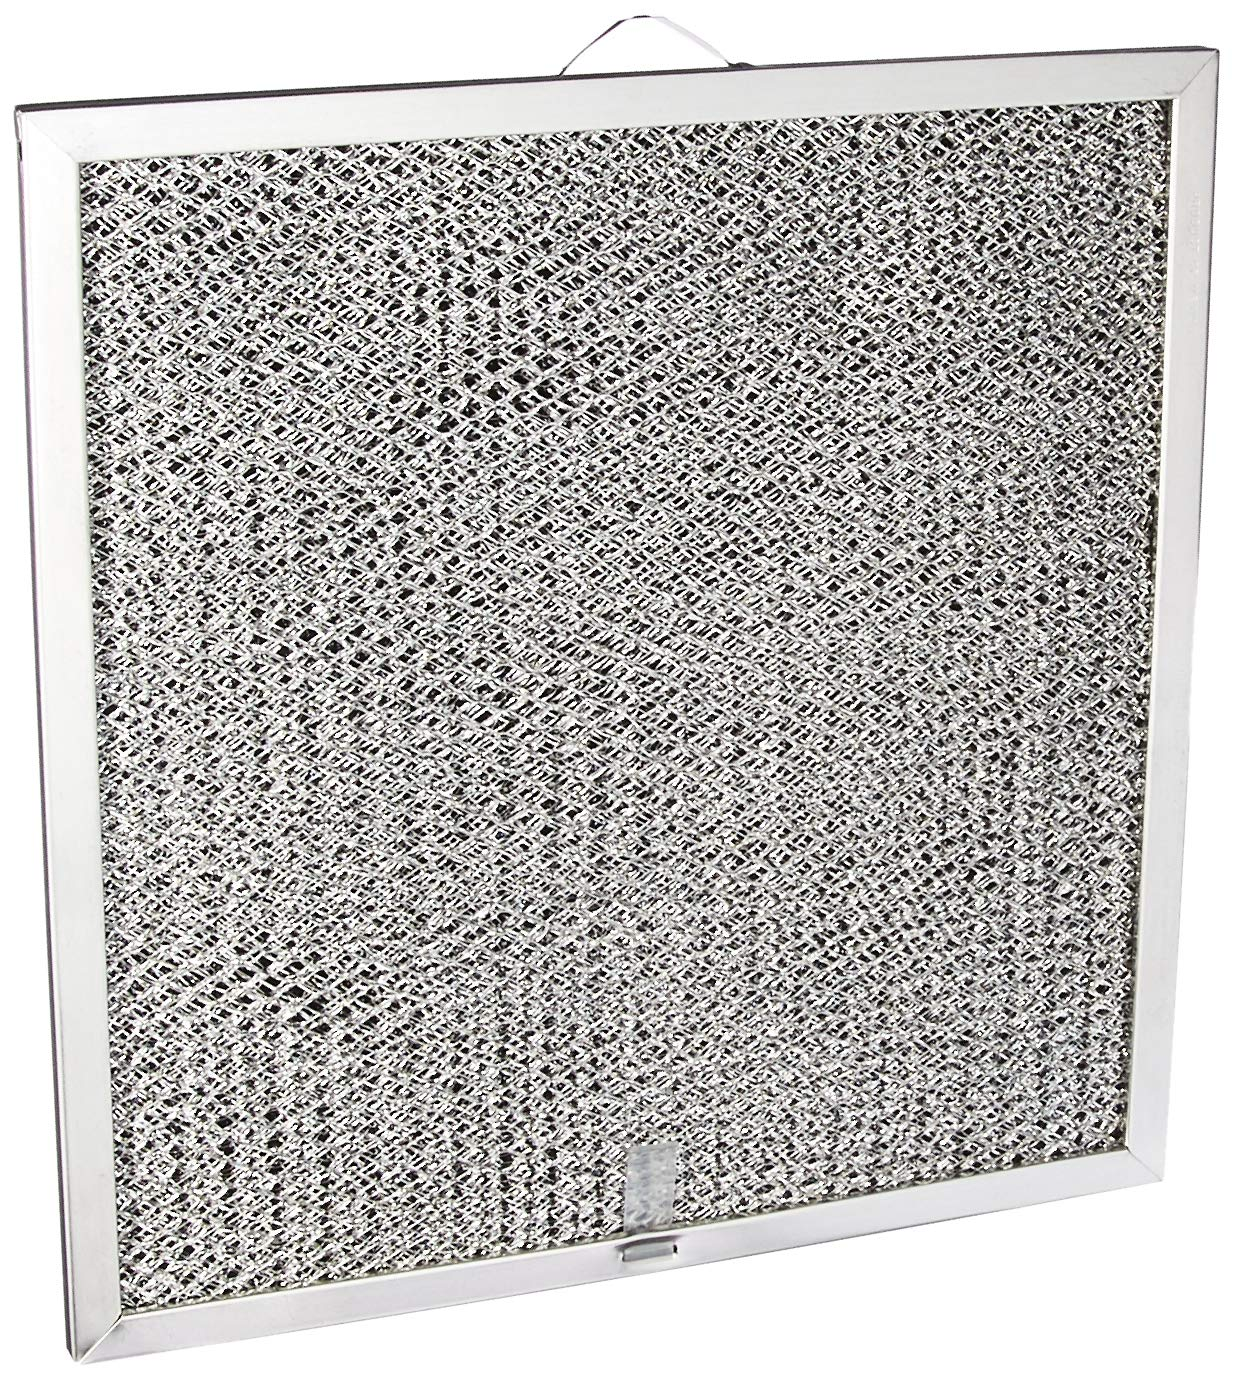 Broan BPQTF Non-Ducted Charcoal Replacement Filter for QT20000 Range Hoods, Grey